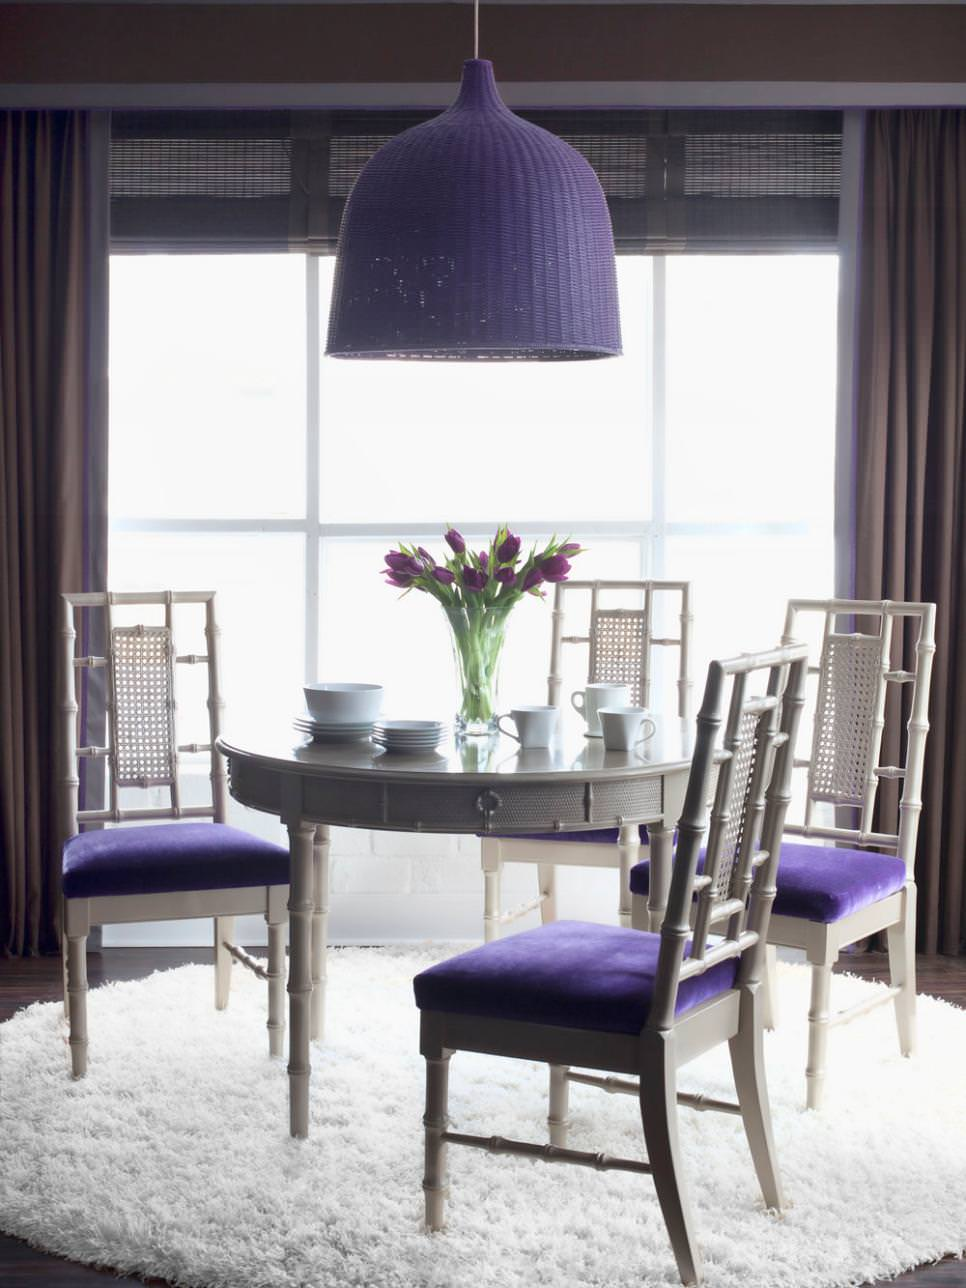 Violet Room Design: 23+ Purple Dining Room Designs, Decorating Ideas